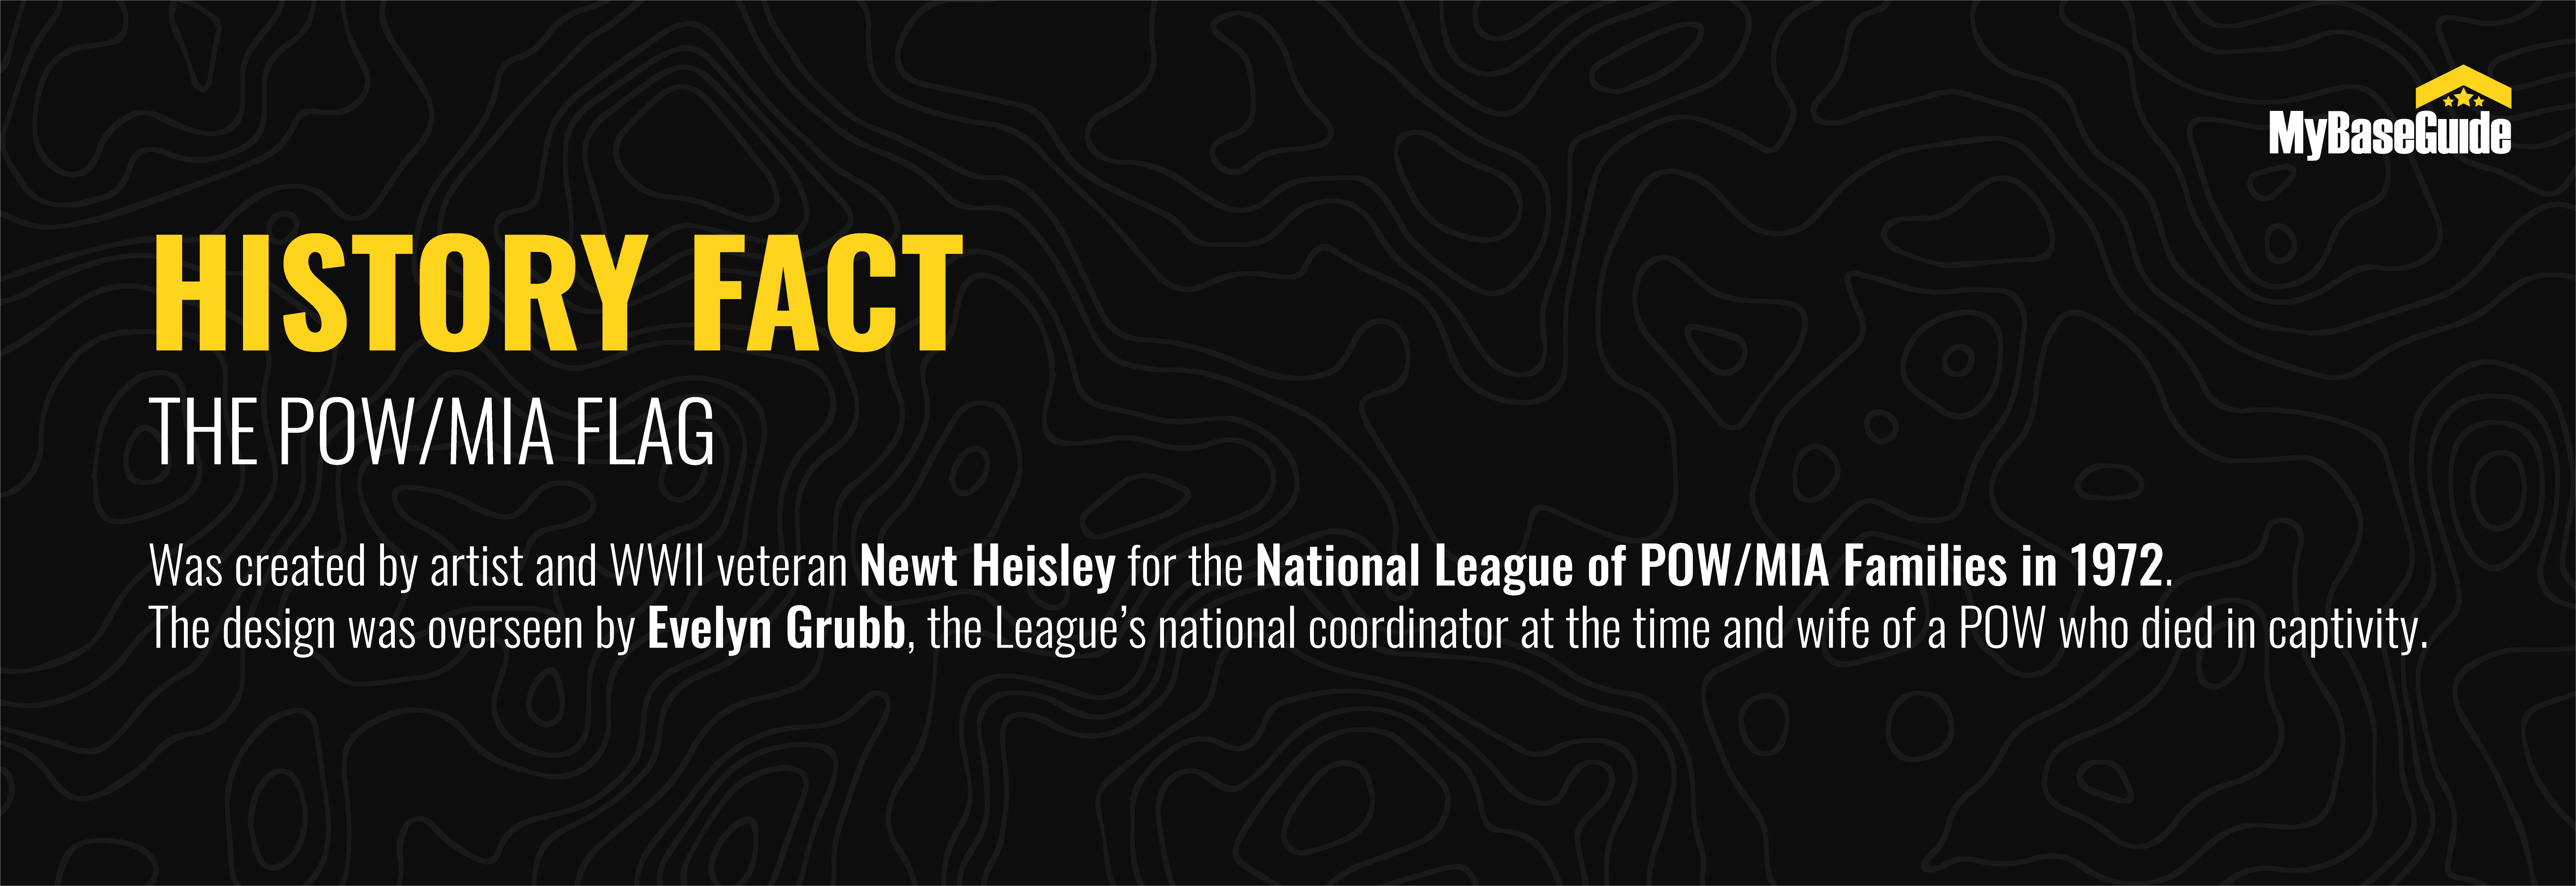 The POW/MIA flag was created by artist and WWII veteran Newt Heisley for the National League of POW/MIA Families in 1972.